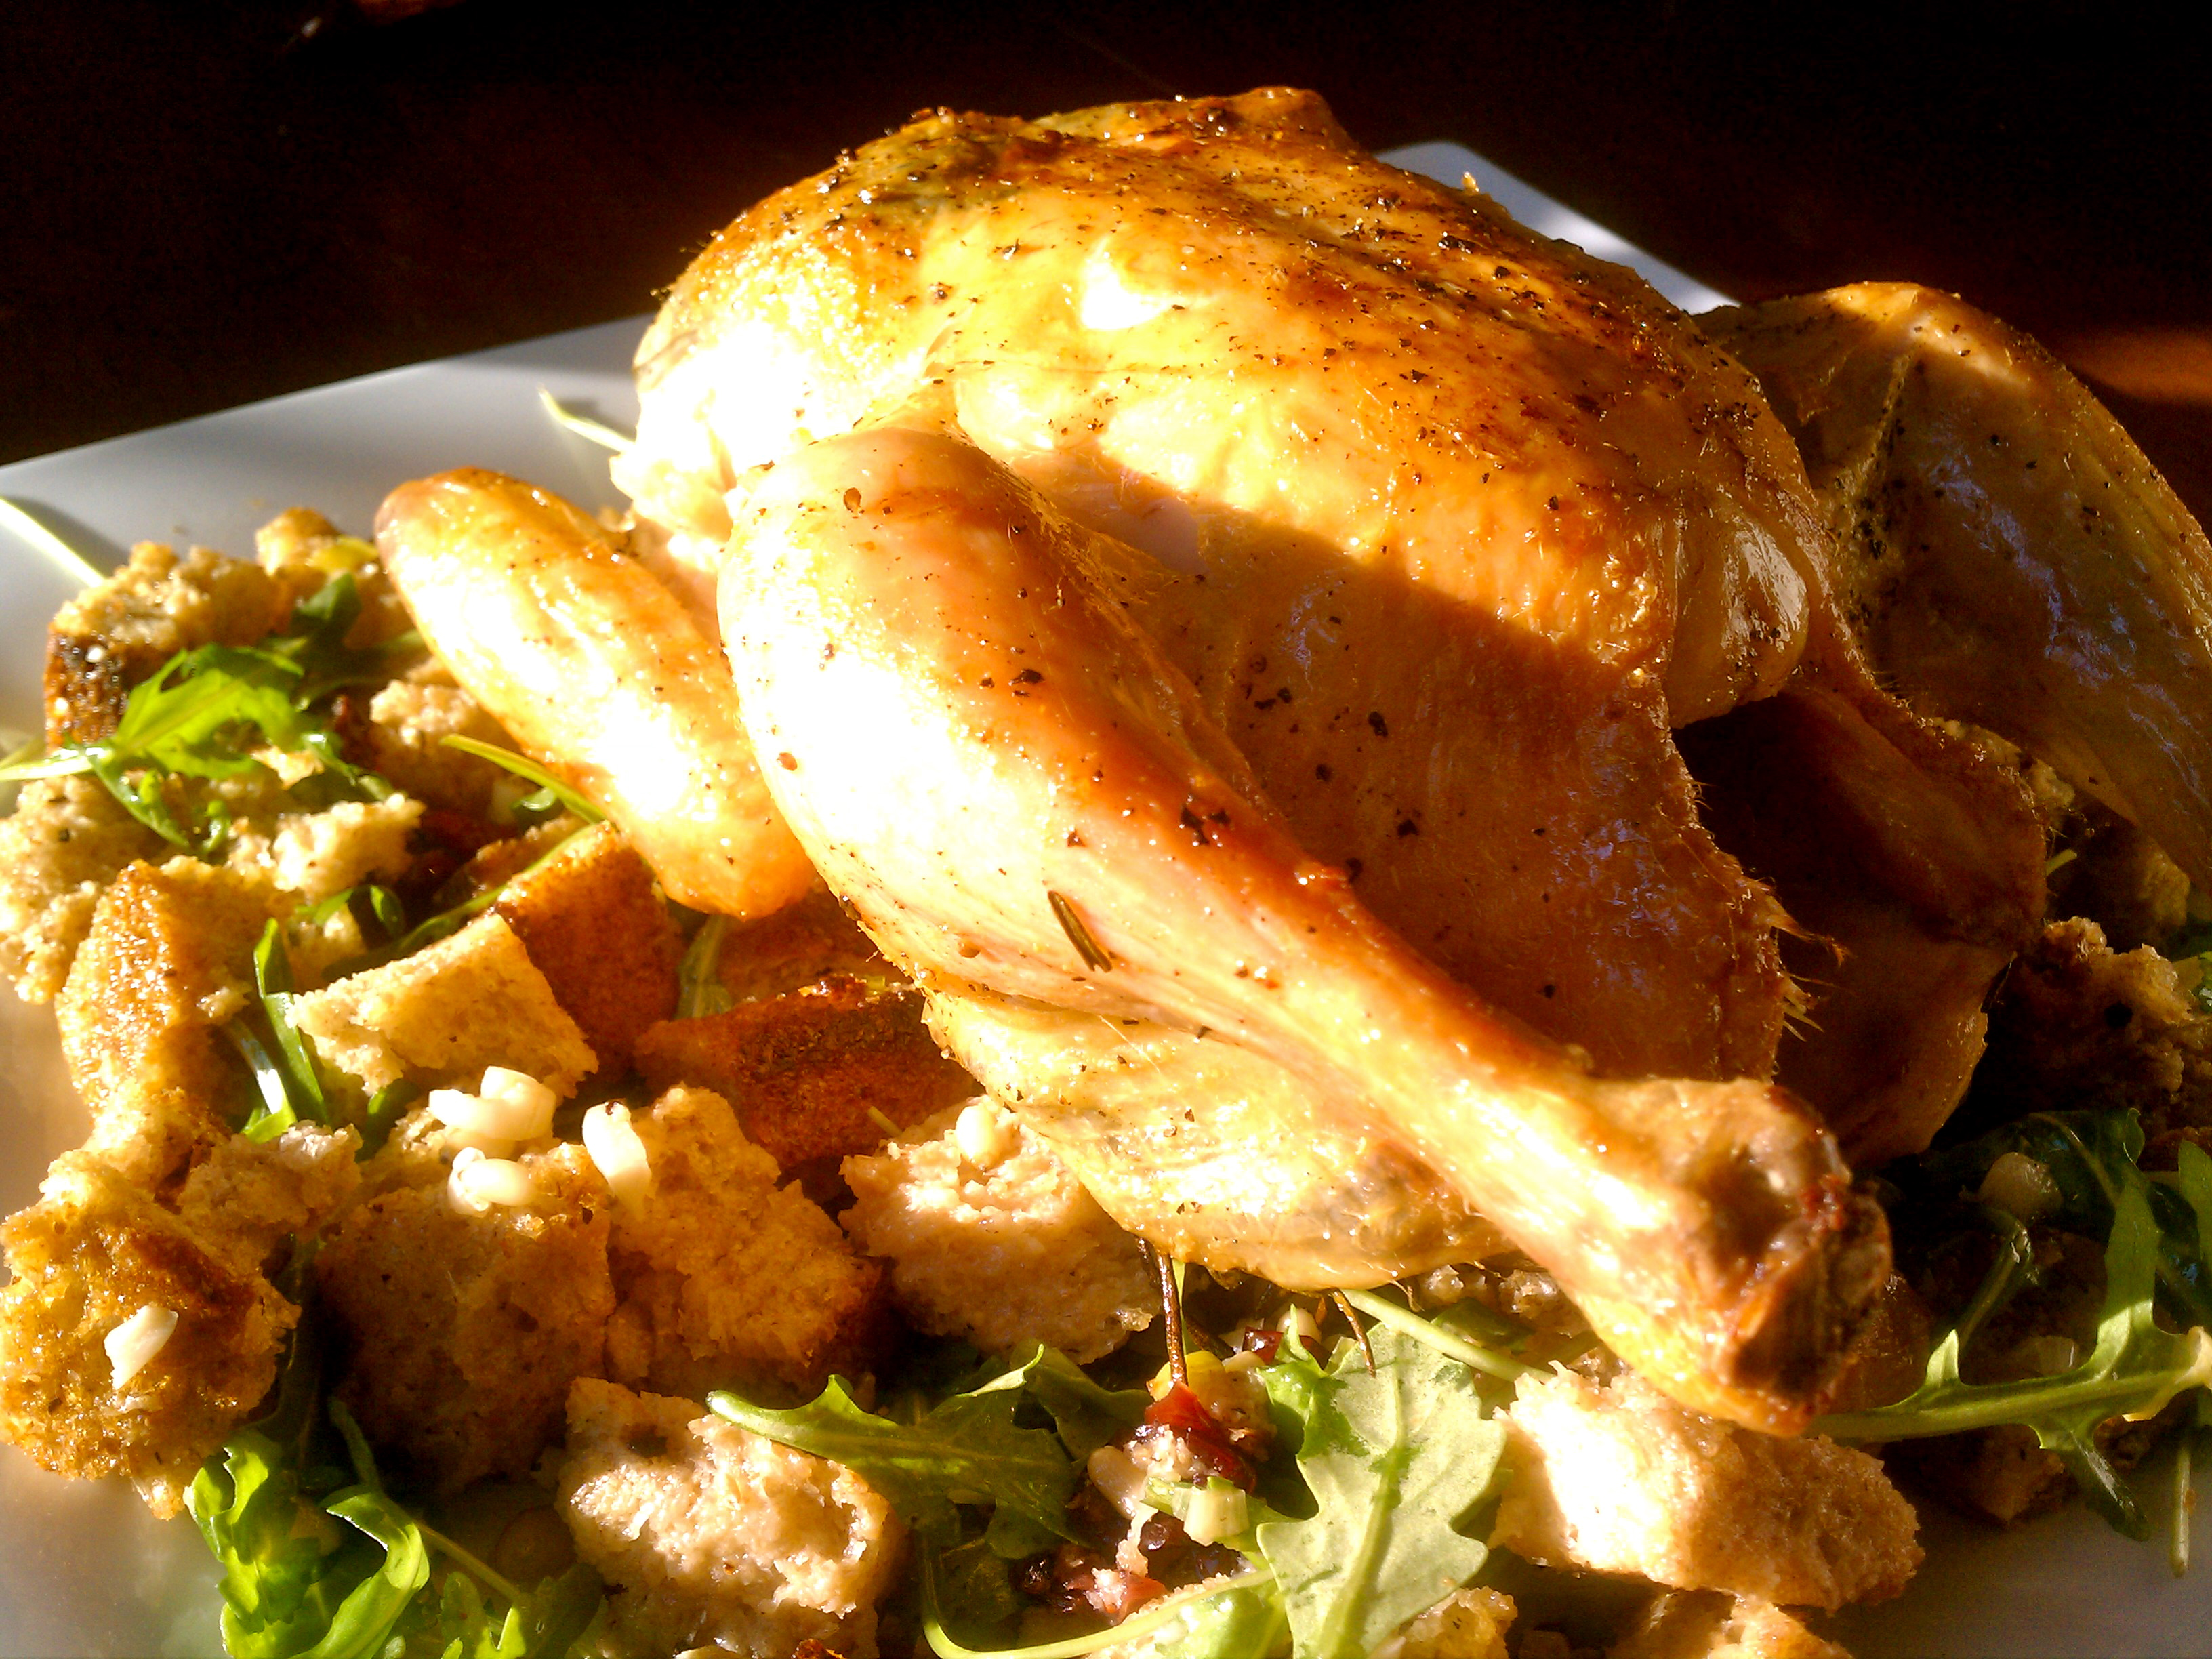 Zuni Cafe's Roasted Chicken and Bread Salad |